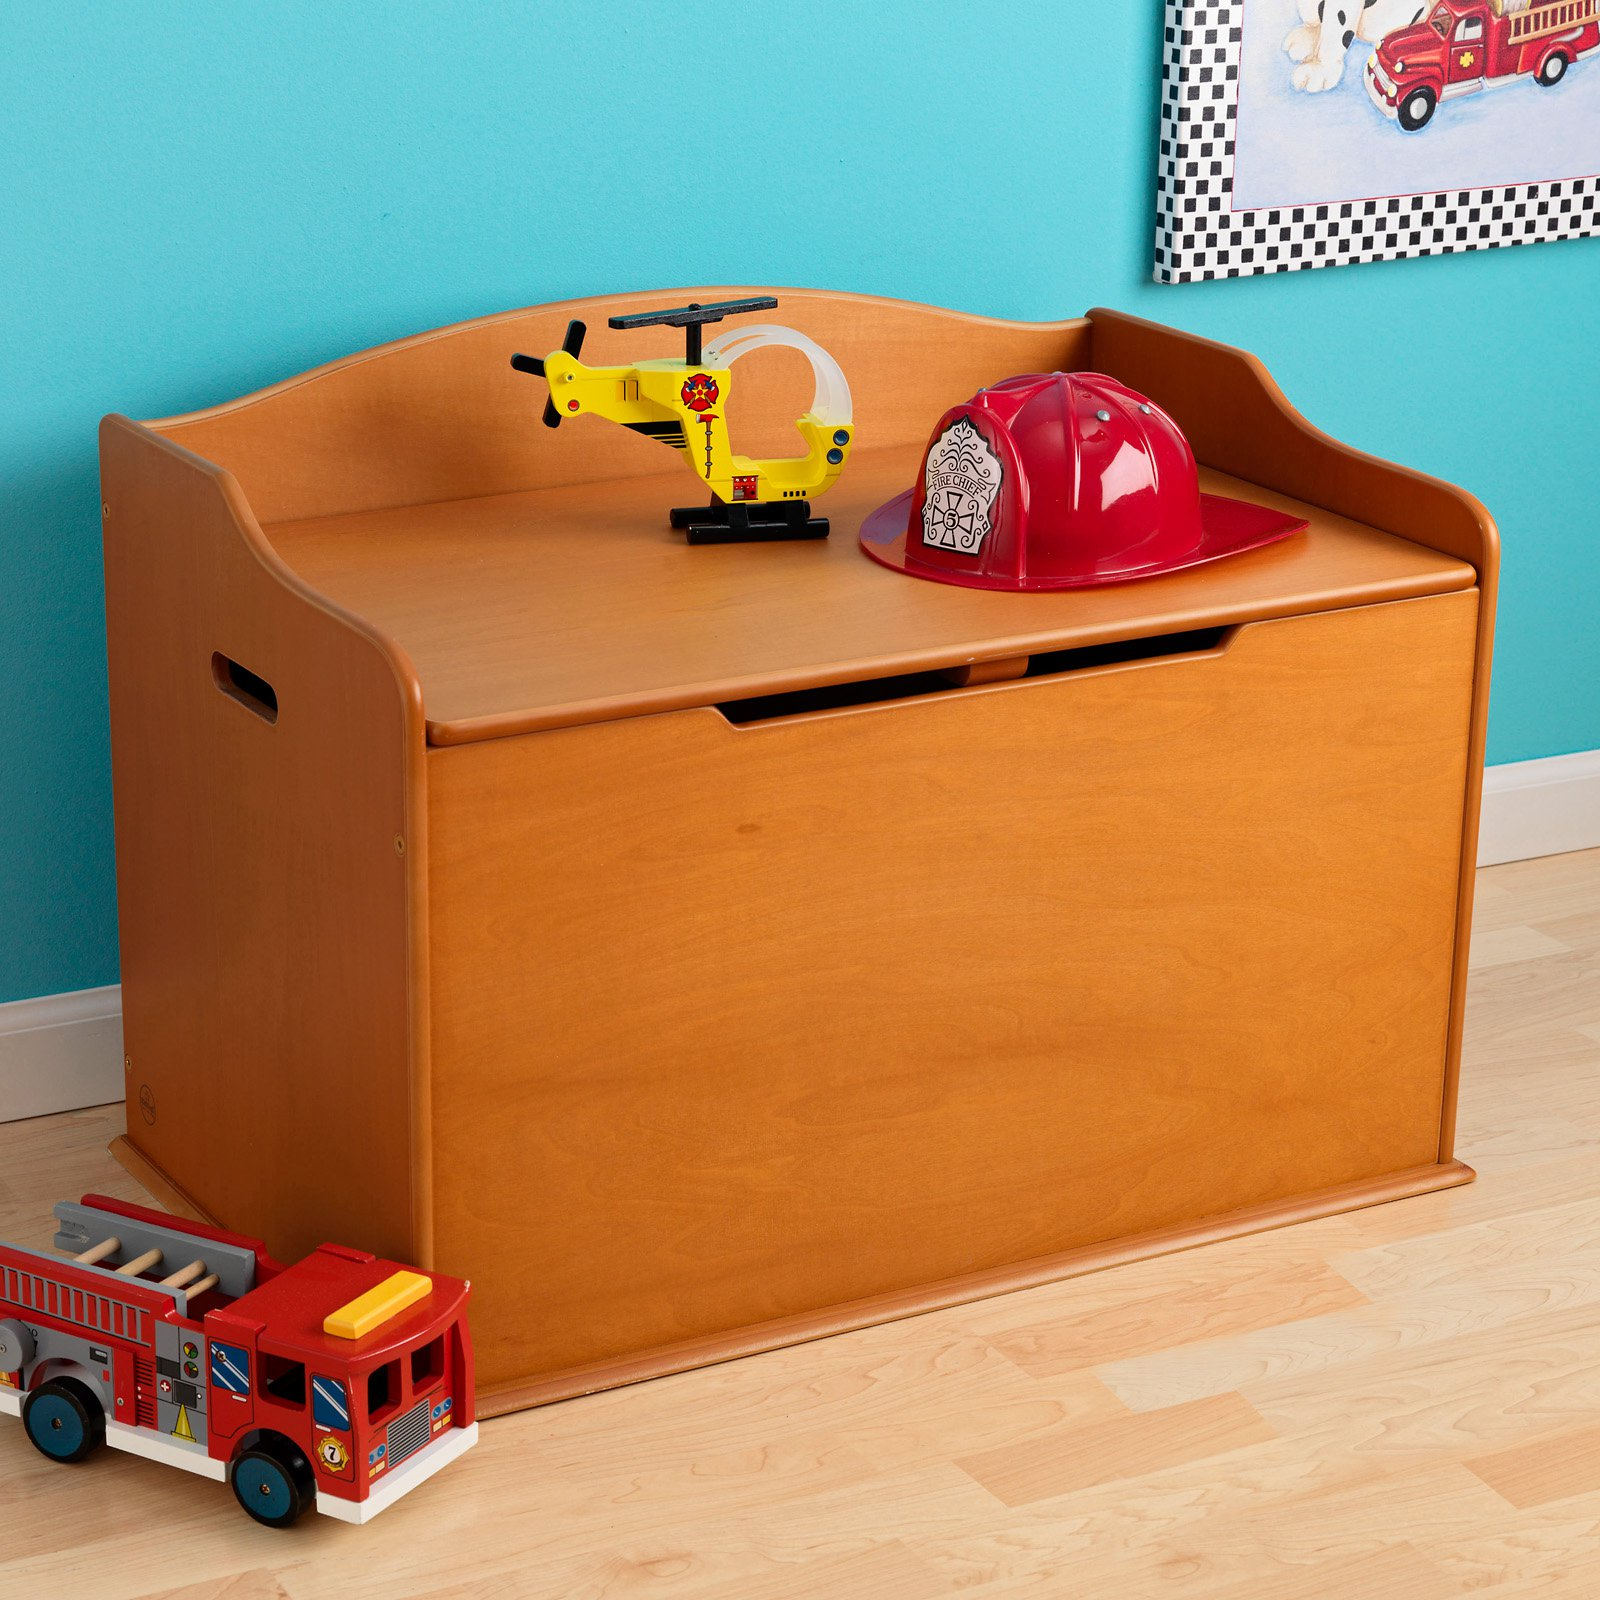 Charmant KidKraft Austin Wooden Toy Organizer Storage Chest Box And Sitting Bench,  Cherry   Walmart.com